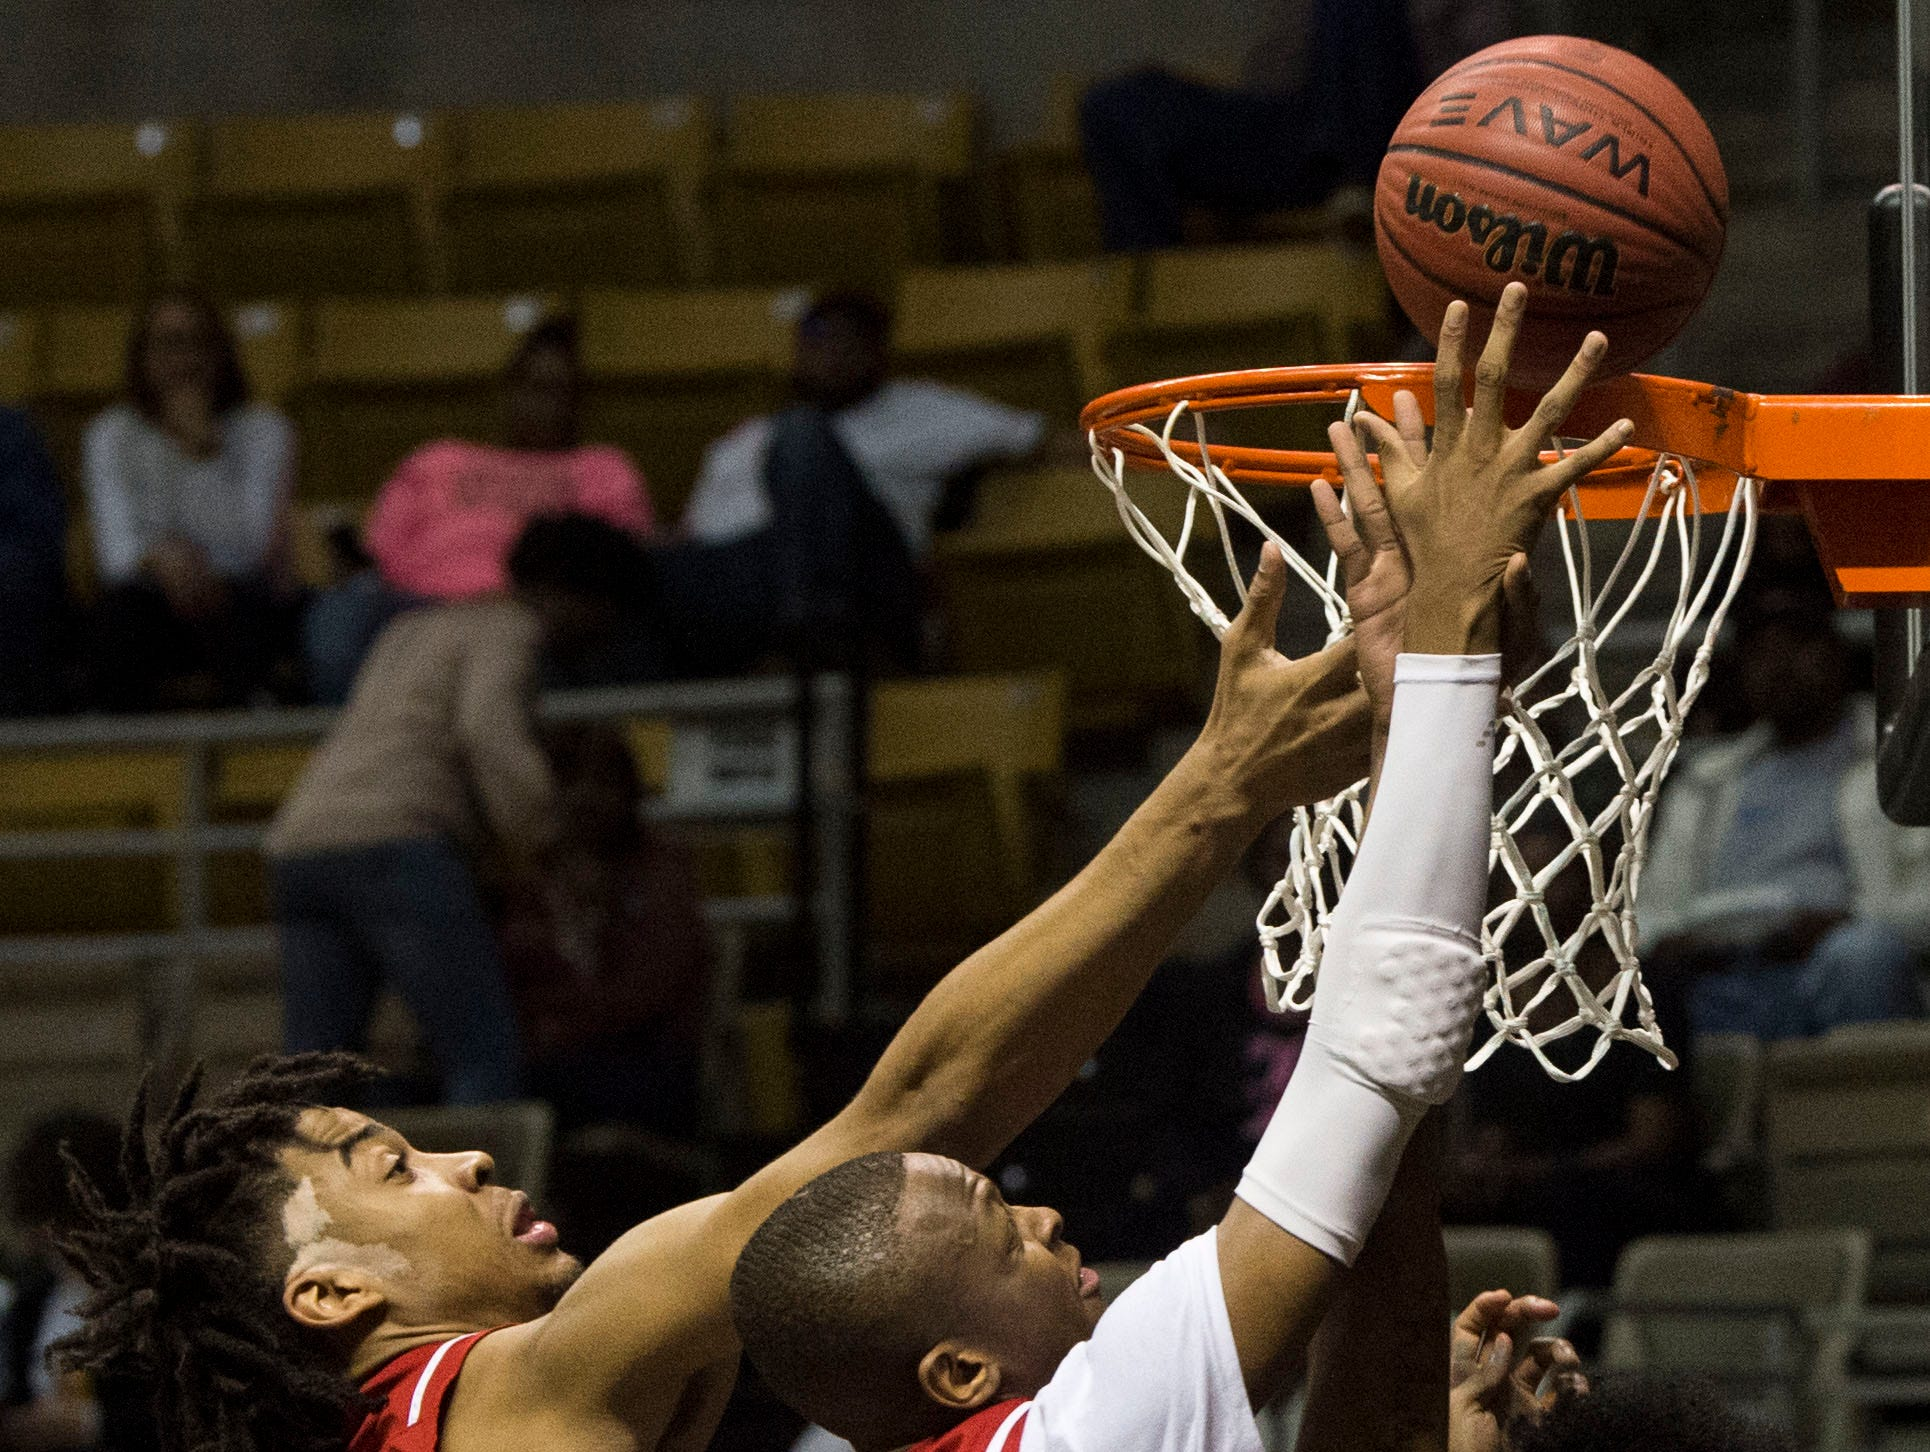 Three Alabama All-star players jump for a rebound during the Alabama-Mississippi All-Star game at the Dunn-Oliver Acadome in Montgomery, Ala., on Friday, March 15, 2019. Mississippi All-stars leads the Alabama All-stars 47-39 at halftime.